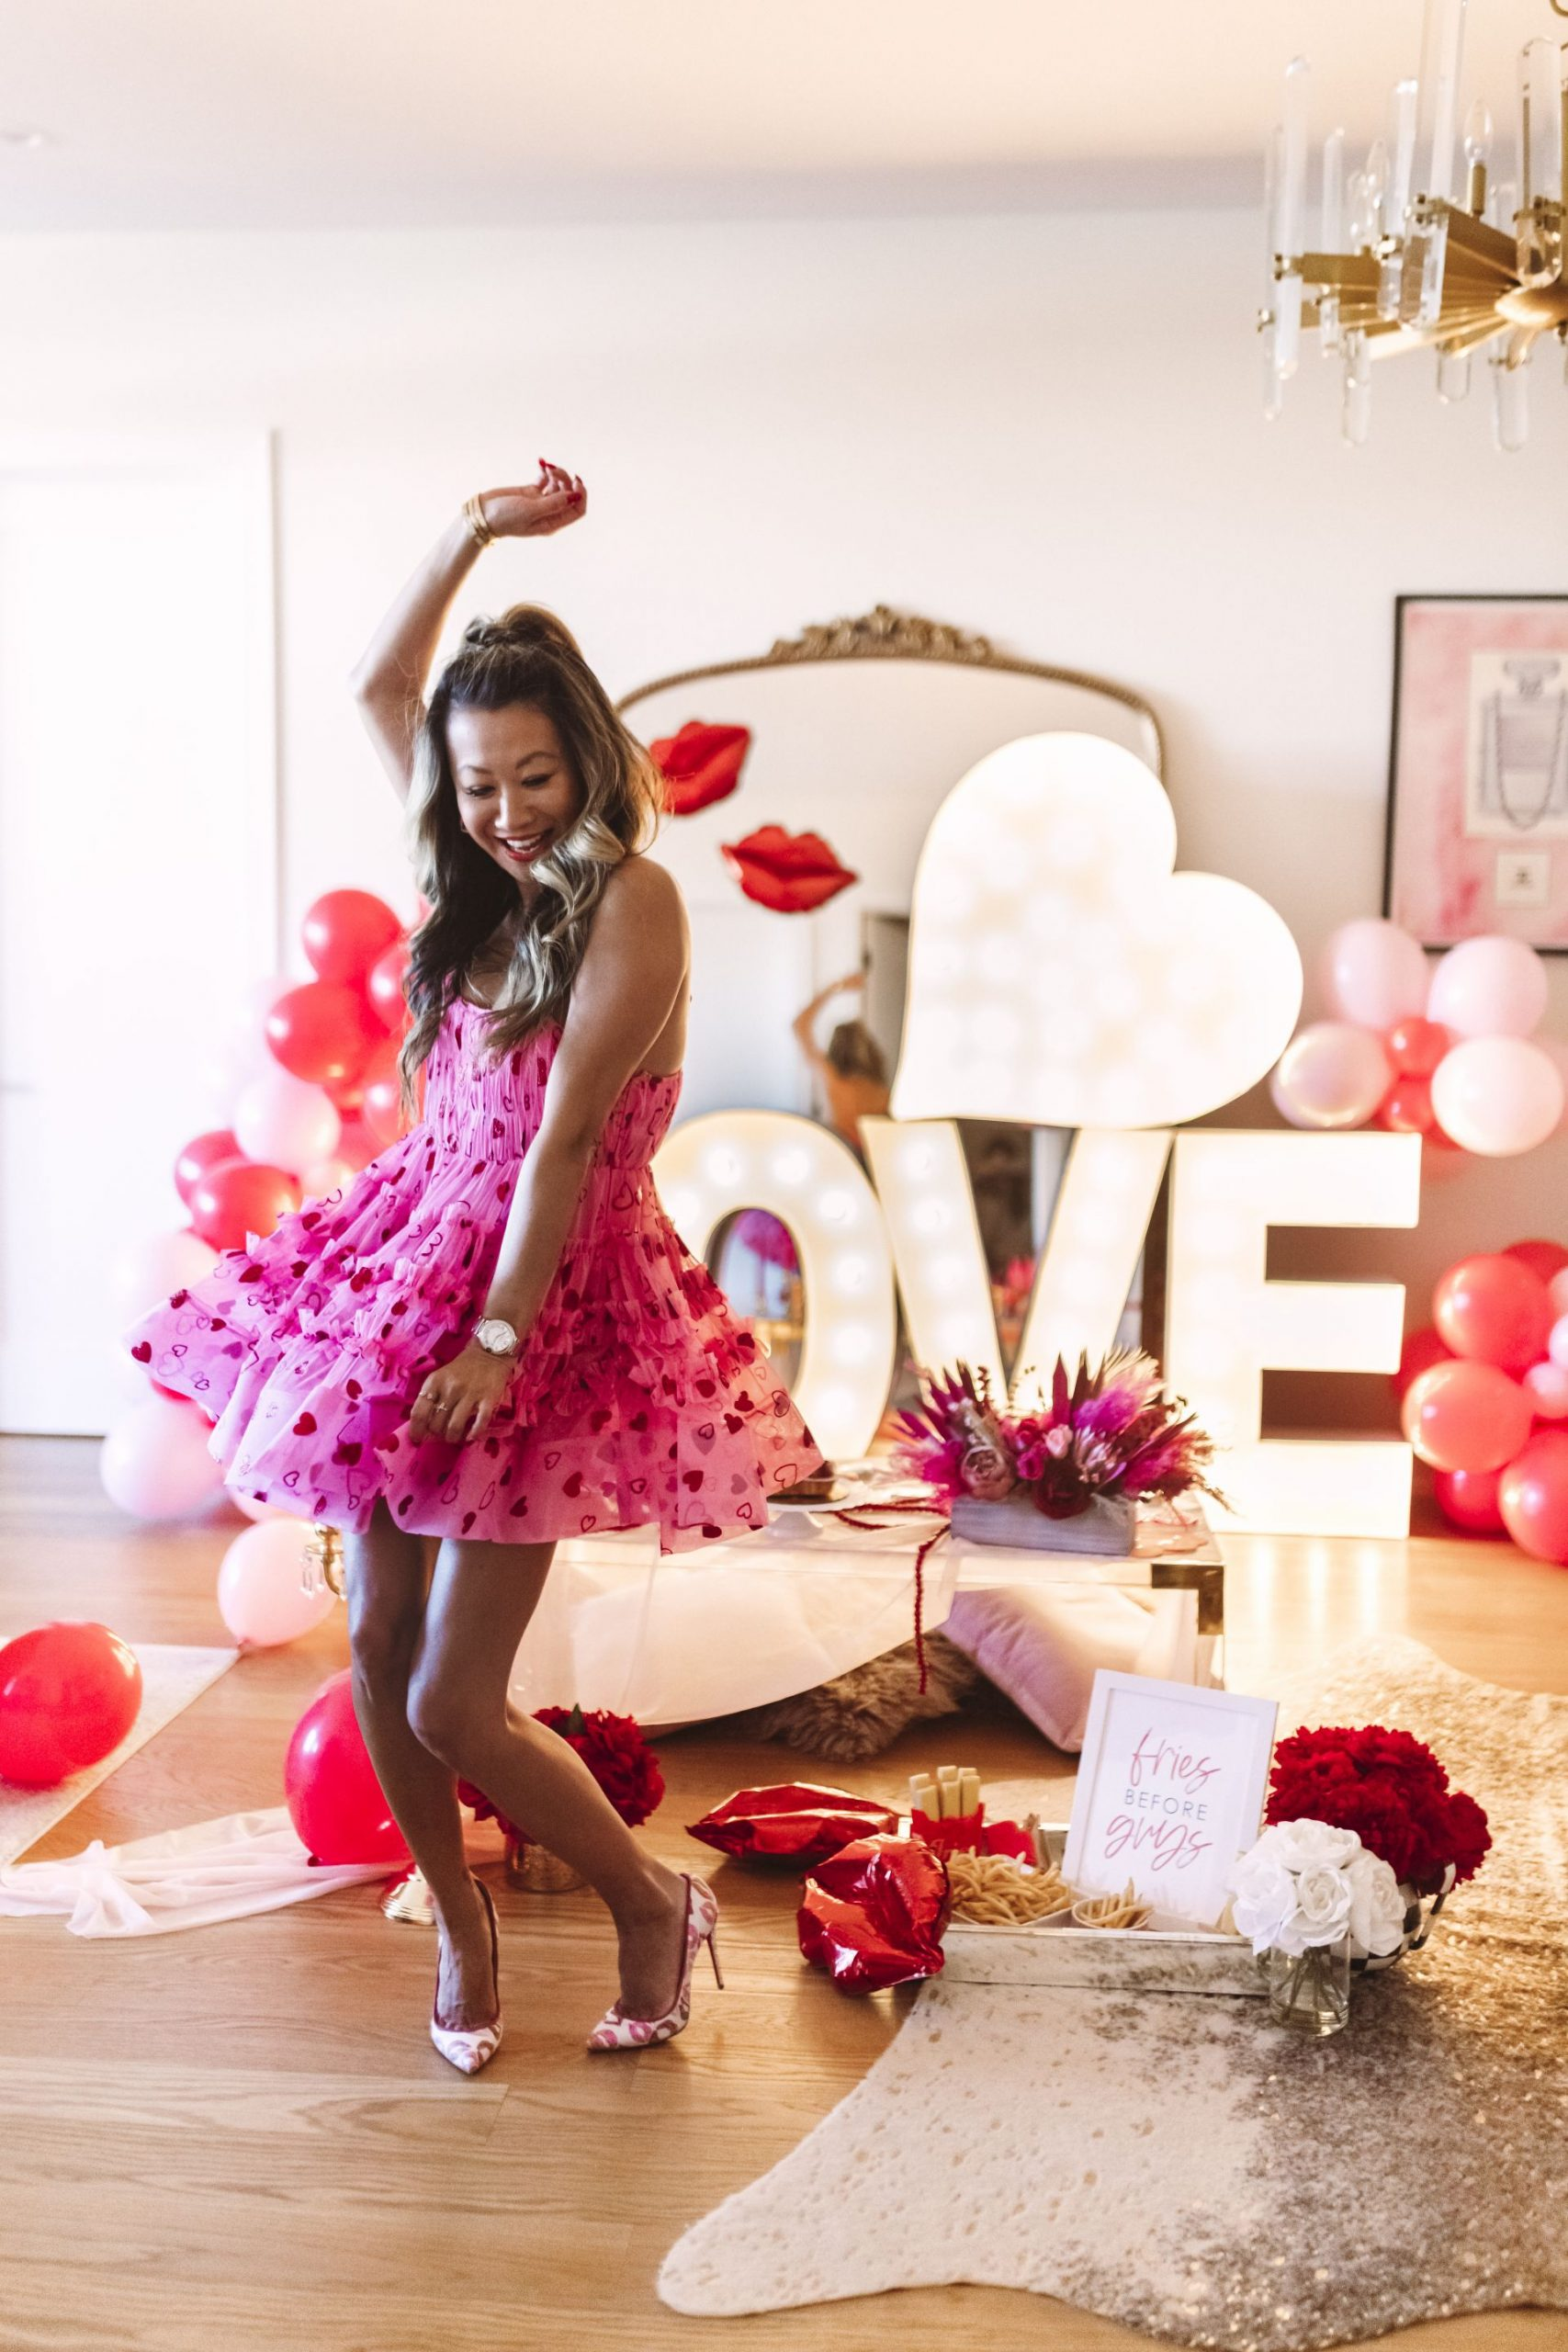 glam Valentine's and Galentine's party, Valentine's Day style, pink vday dress, valentines day dress, galentines day dress, Glam Party Decor Ideas, Galentine's party decor, Valentine's day party decor, girls night party decor ideas, Vday party decorations, pink and red party theme, girly party theme decor, love party theme decor, valentines day party ideas, valentines day party ideas for adults,  light up marquee letters for parties, Red Soles and Red Wine, Jennifer Worman, AlphaLit Chicago Marquee Lights